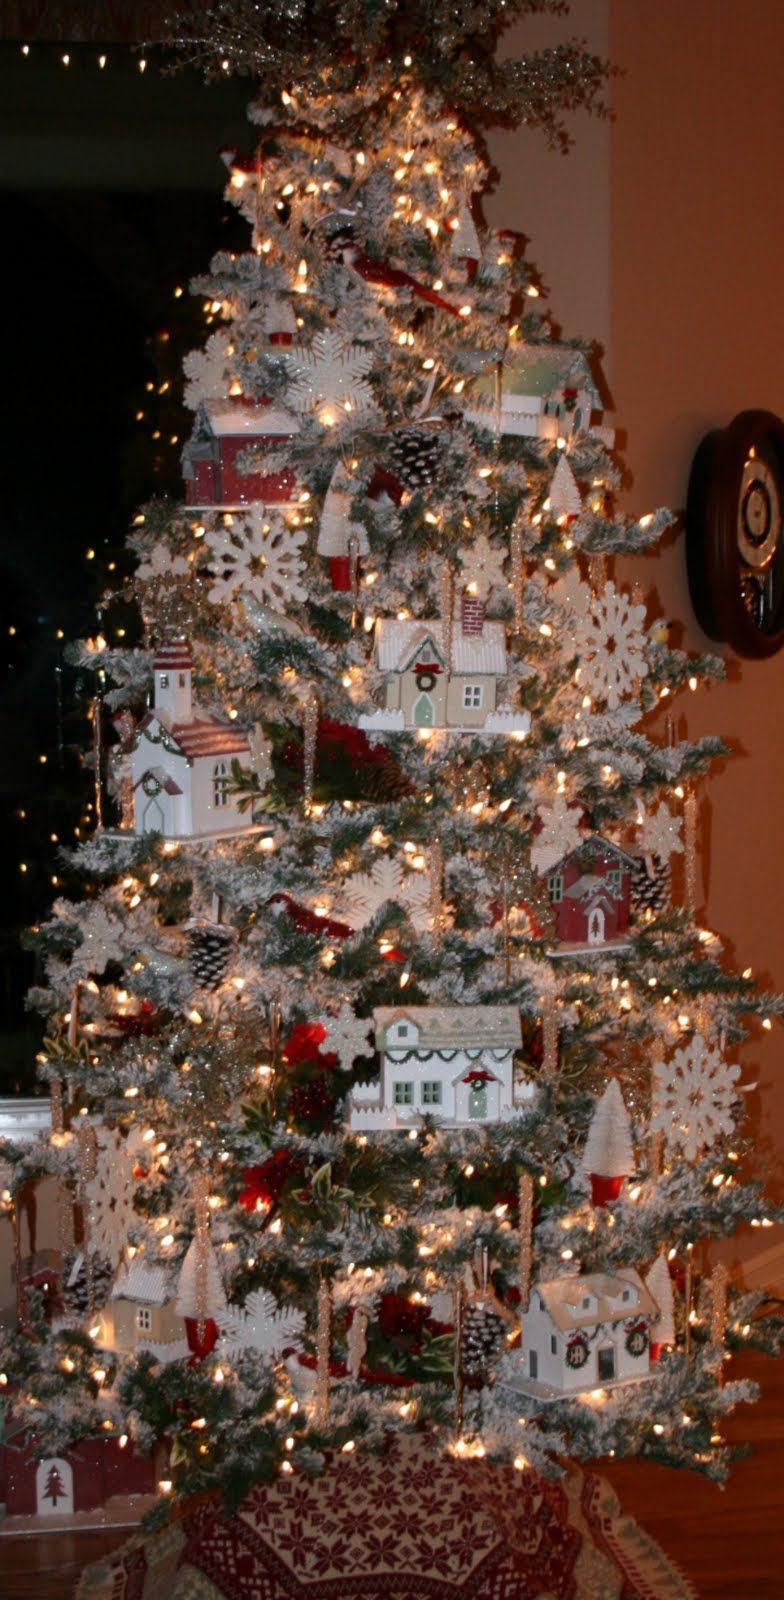 Pin By Lucinda Poahway On Christmas Christmas Tree Village Christmas Tree Christmas Villages